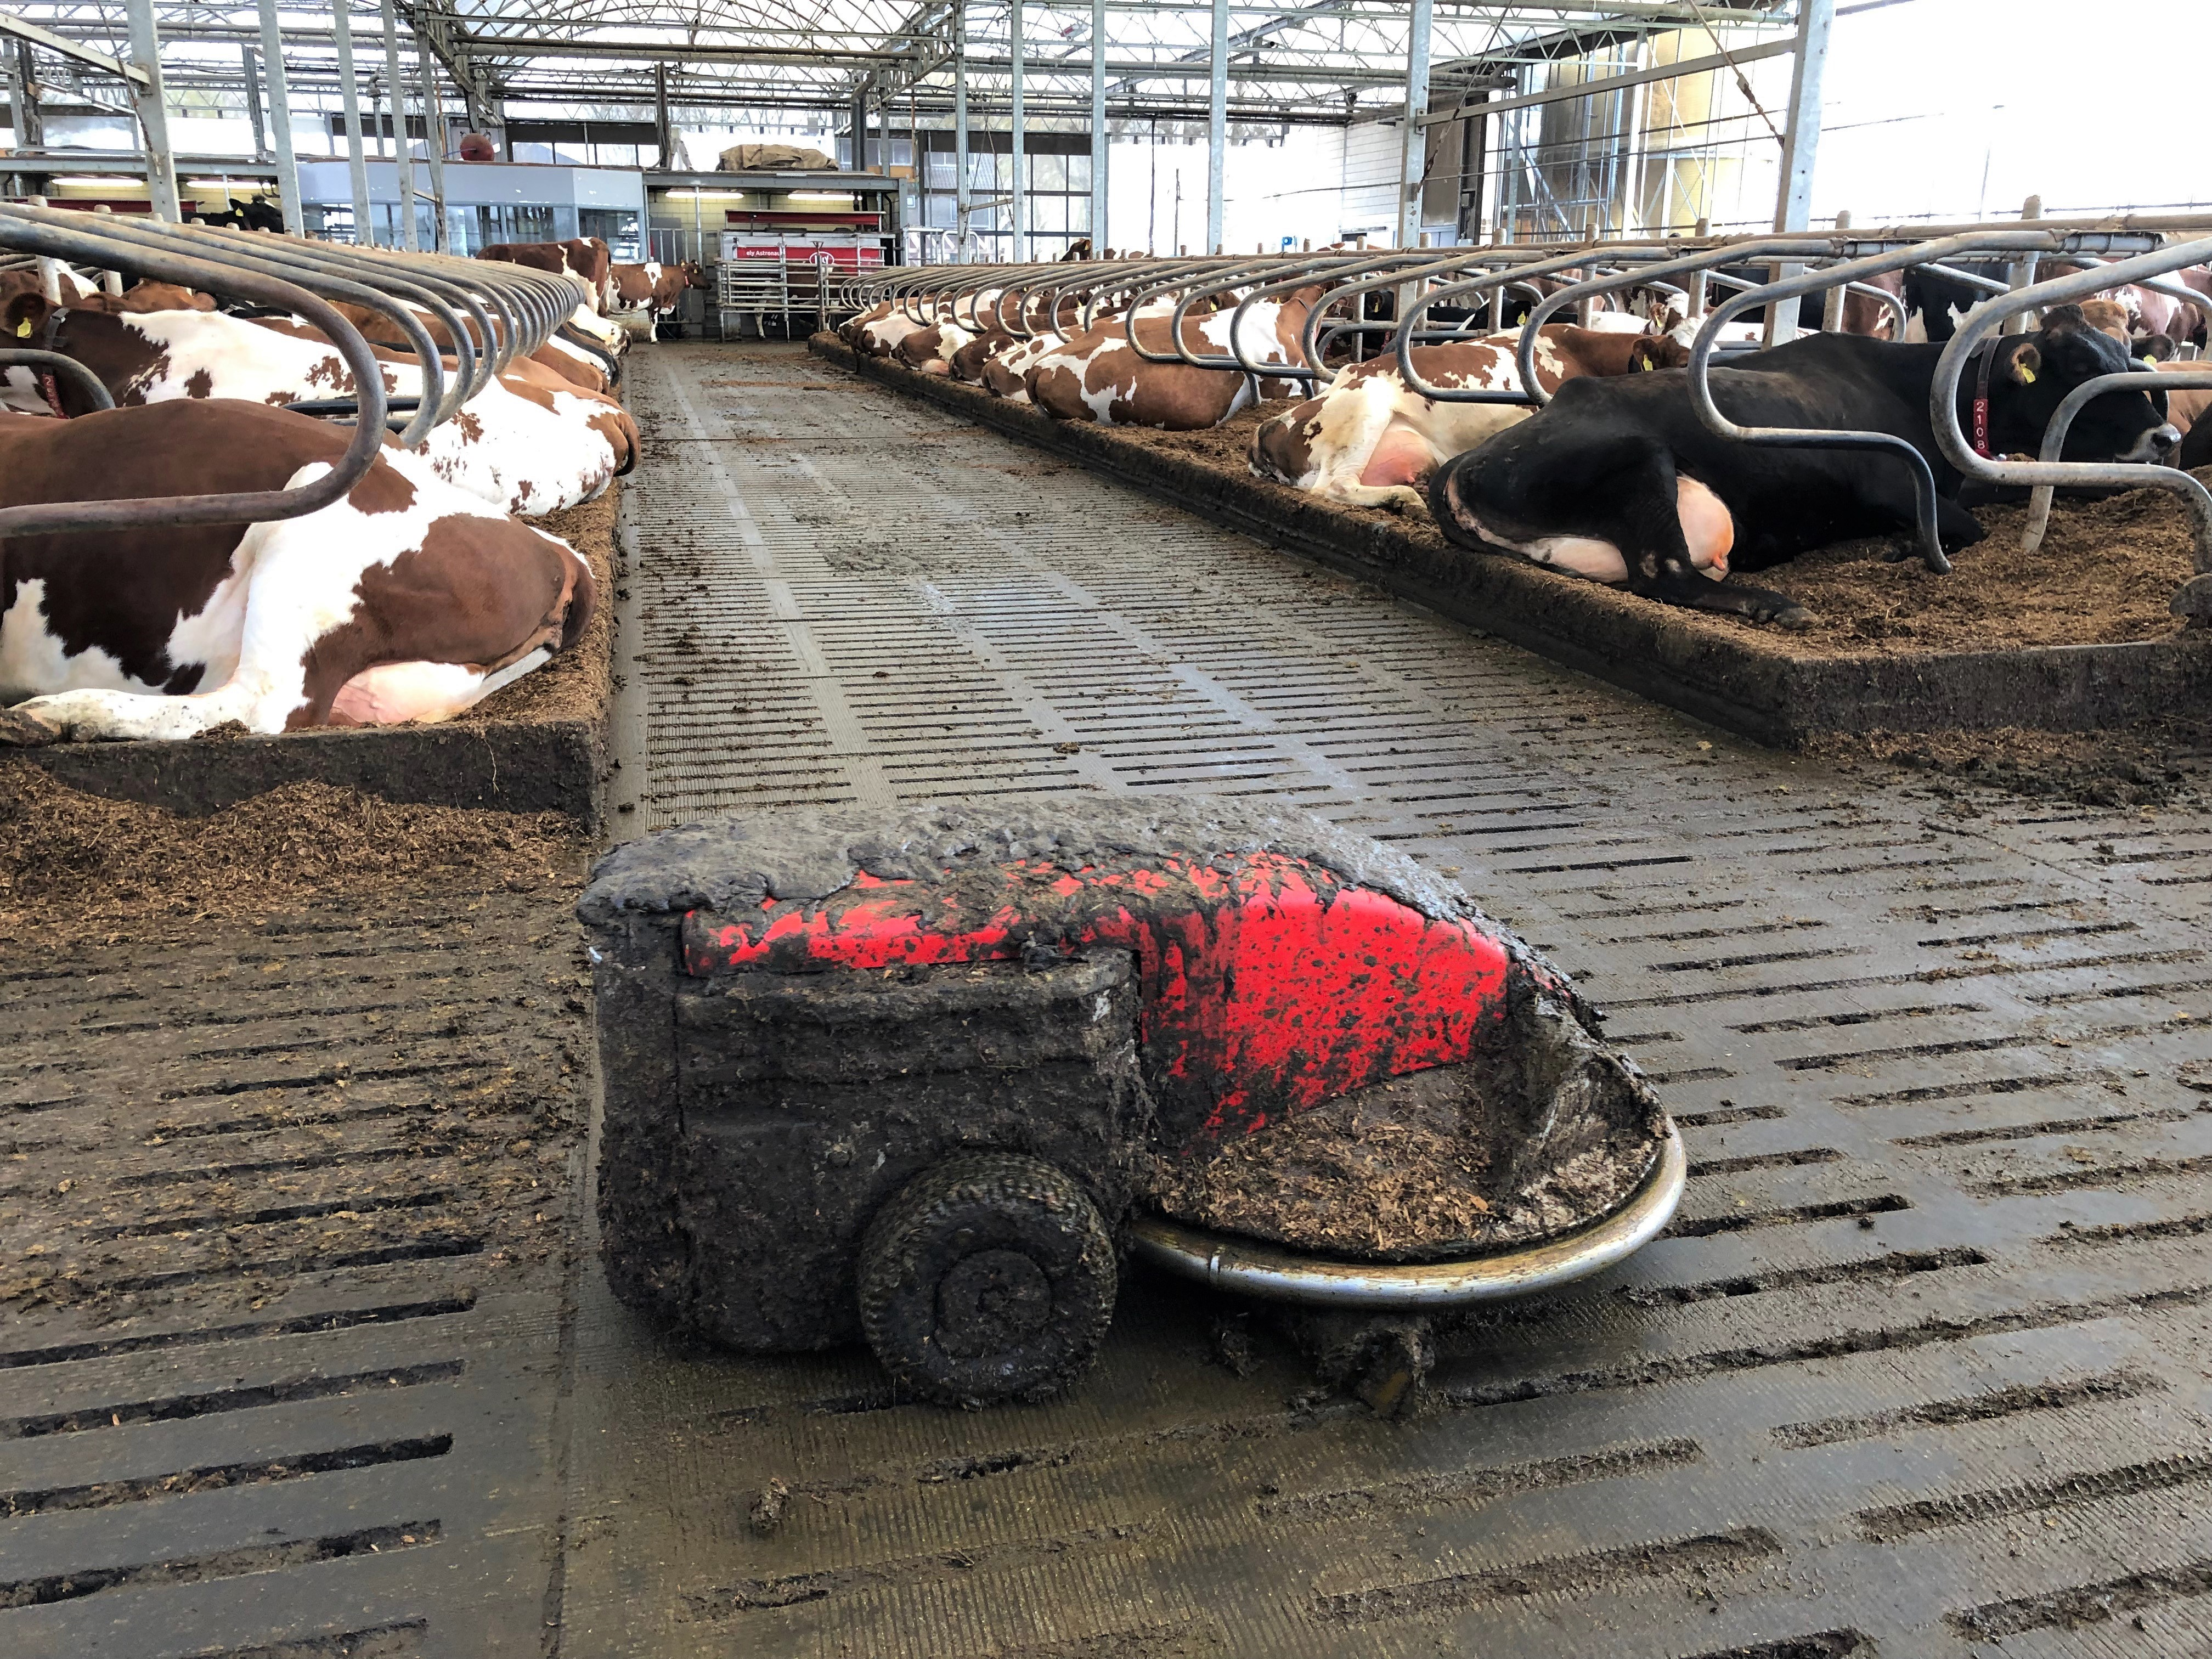 The barn also has a lely discovery for scraping manure off the slates as well as a lely l4c light for cows lighting system for longer daylight hours